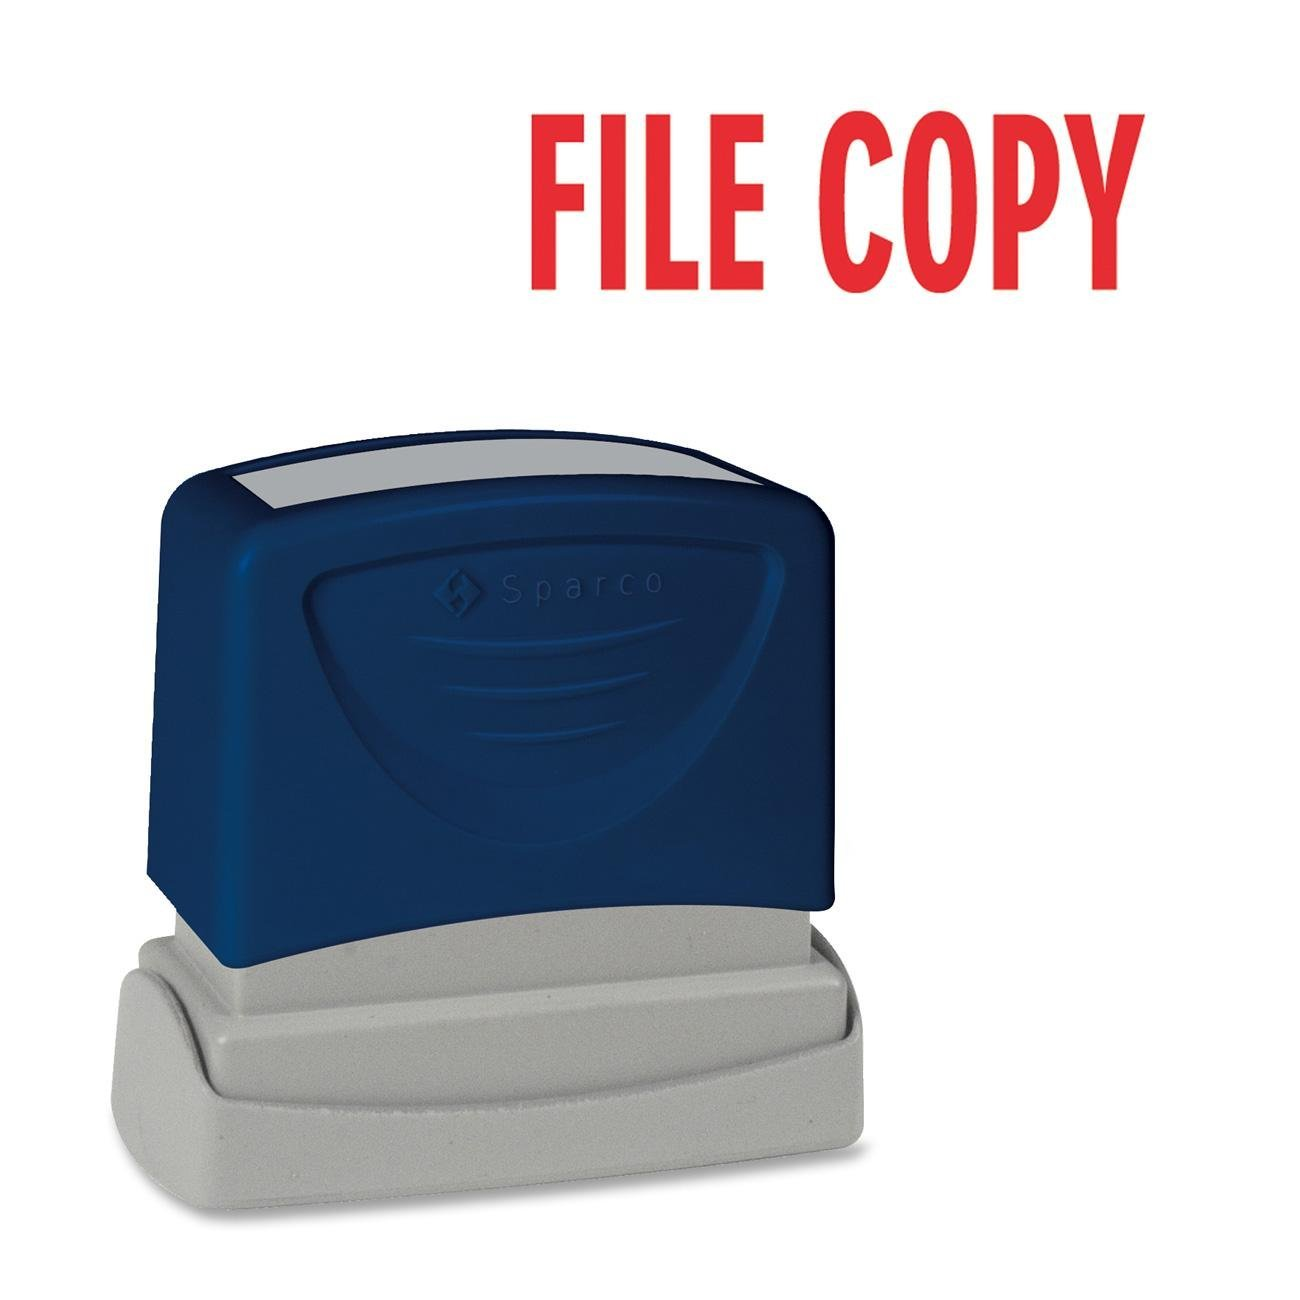 """Sparco Products Products - FILE COPY Title Stamp, 1-3/4""""x5/8"""", Red Ink - Sold as 1 EA - Title stamper offers a specially designed system that evenly disperses instant-drying ink. Protective end piece ensures clean impressions. Stamps """"FILE COPY."""" Impression size is 1-3/4"""" x 5/8""""."""